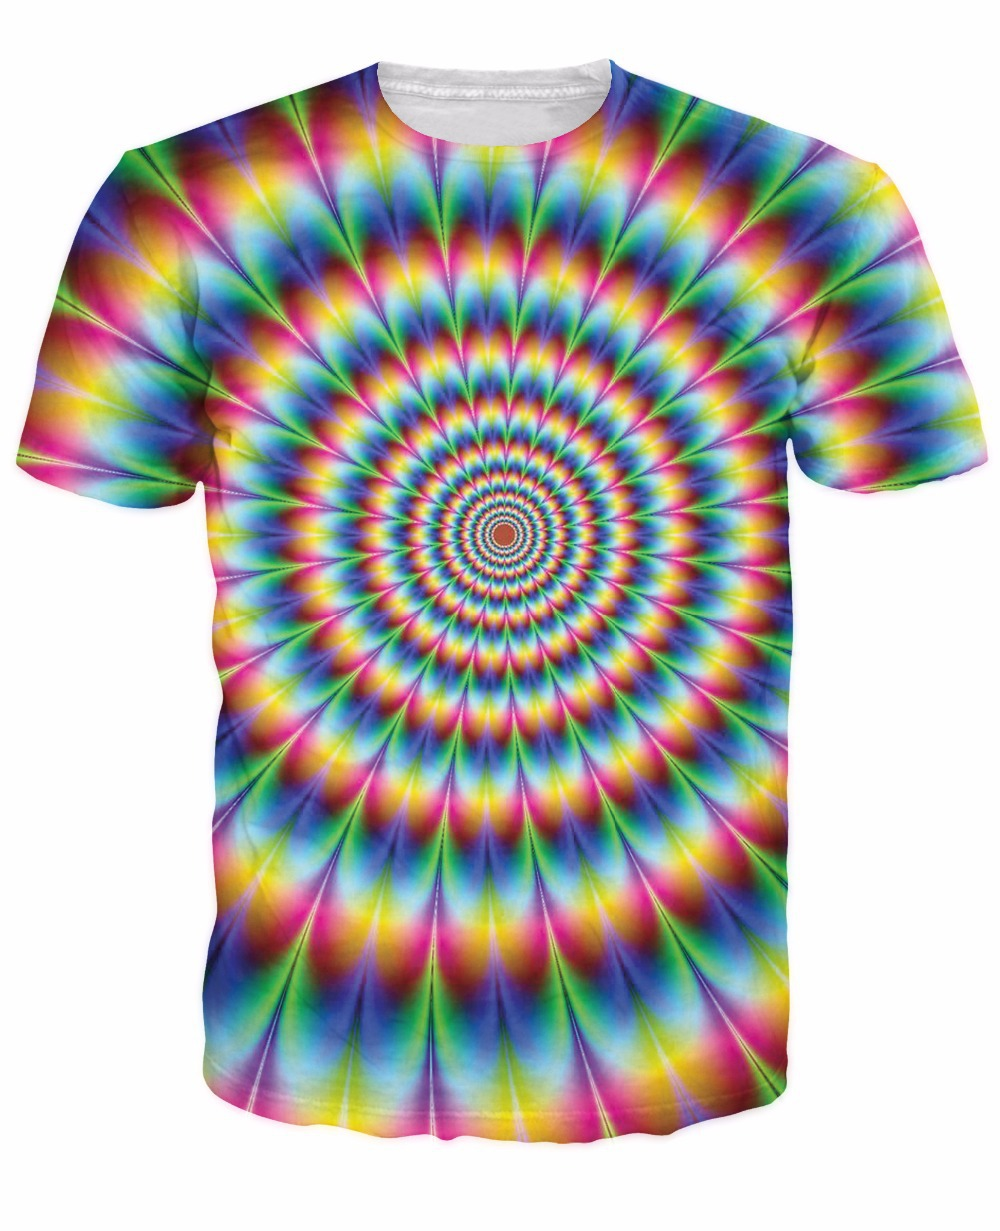 2015 New Arrive 3d Fashion Clothing Women Men tees Into the Rainbow T-Shirt psychedelic Colorful t shirt Summer Style camisetasОдежда и ак�е��уары<br><br><br>Aliexpress